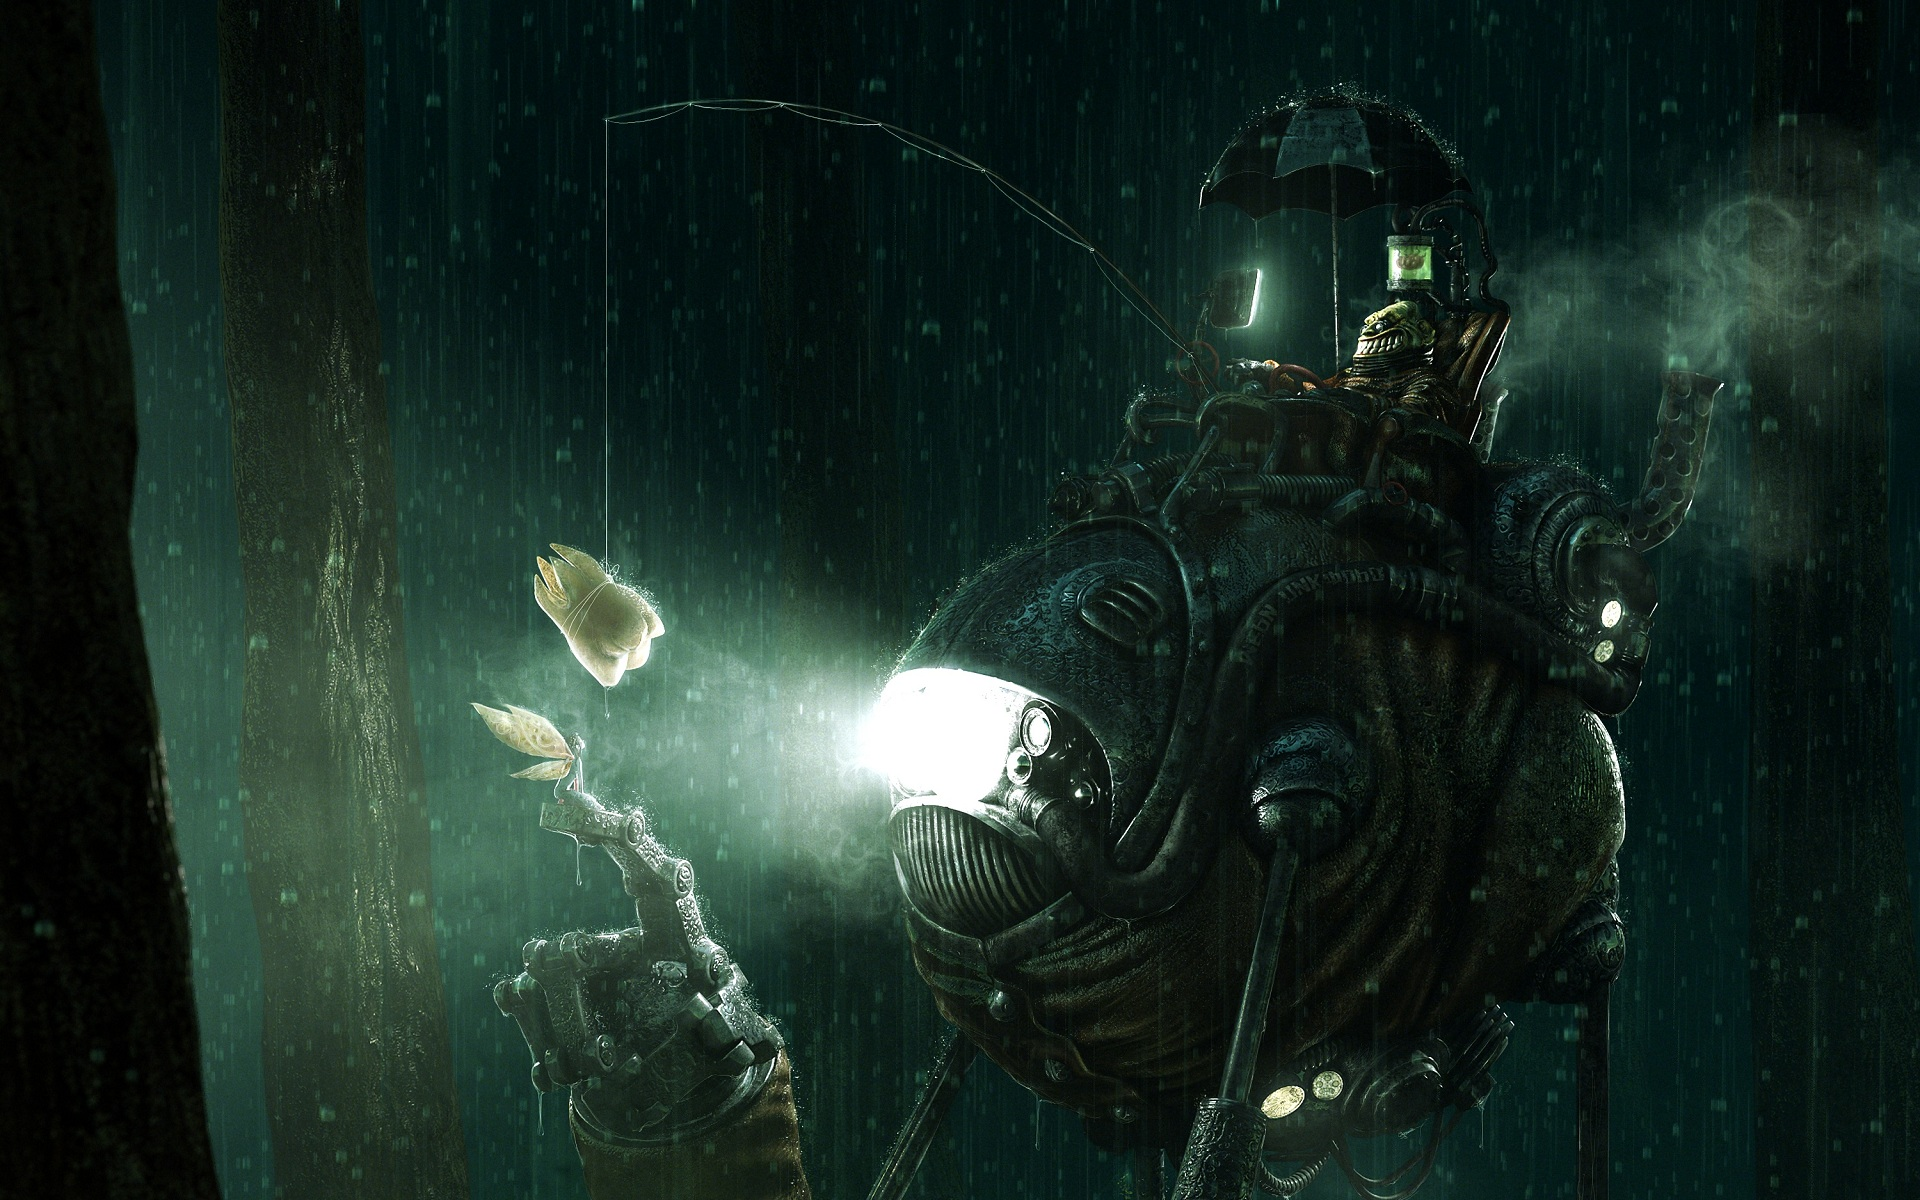 Steampunk Tooth Rain Machine Tooth Fairy Fairy wallpaper 1920x1200 1920x1200